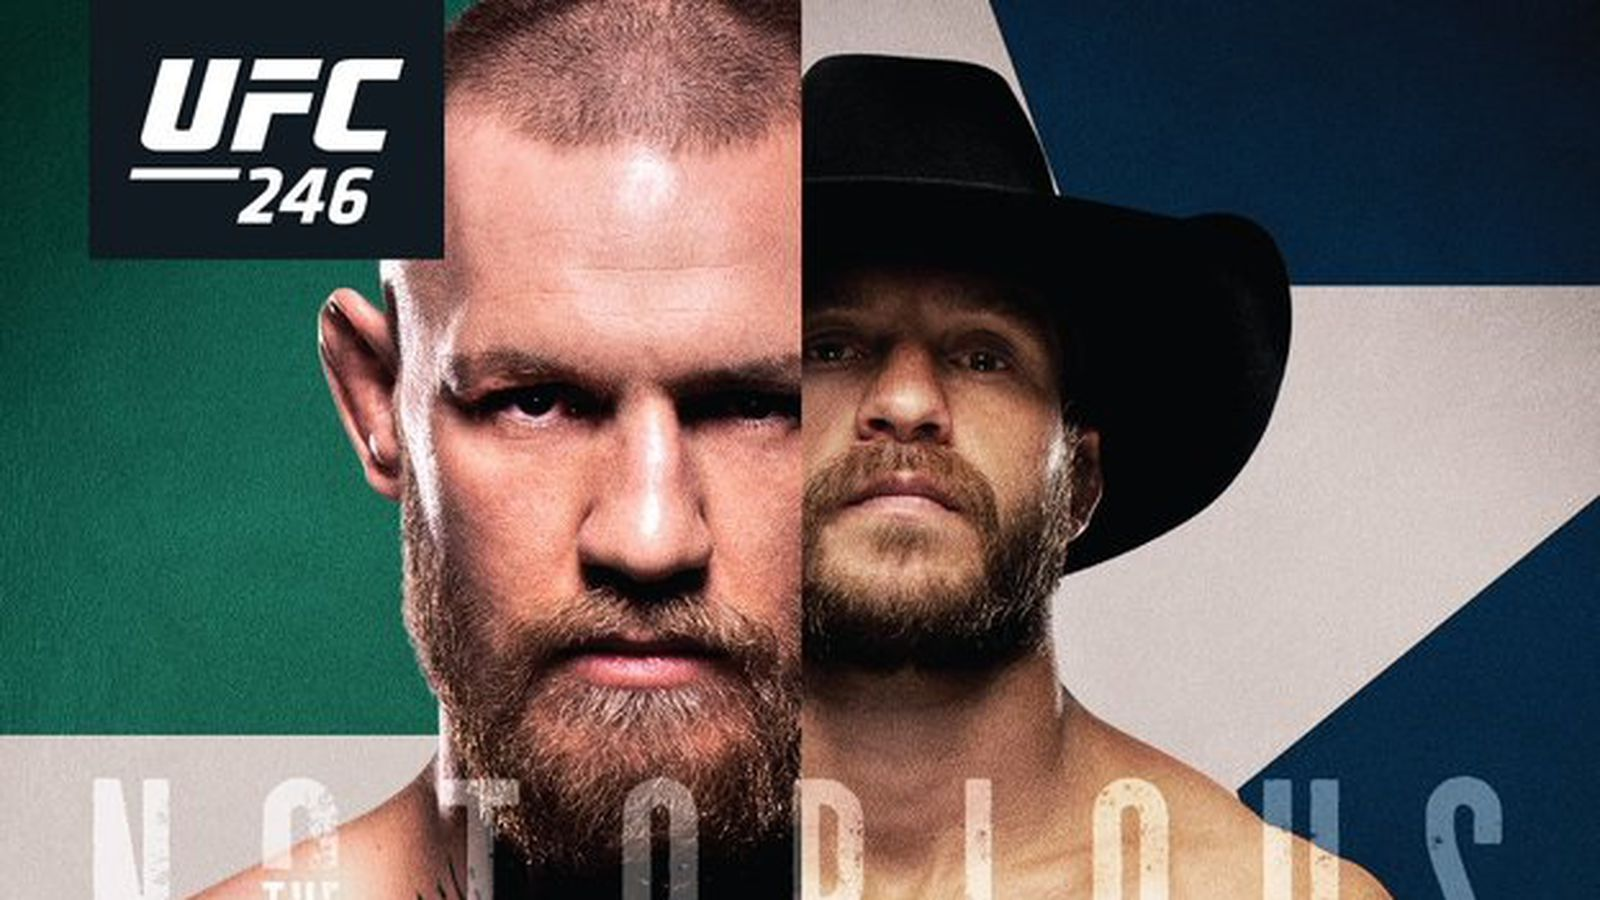 Check Out The New Ufc 246 Promo Video For Mcgregor Vs